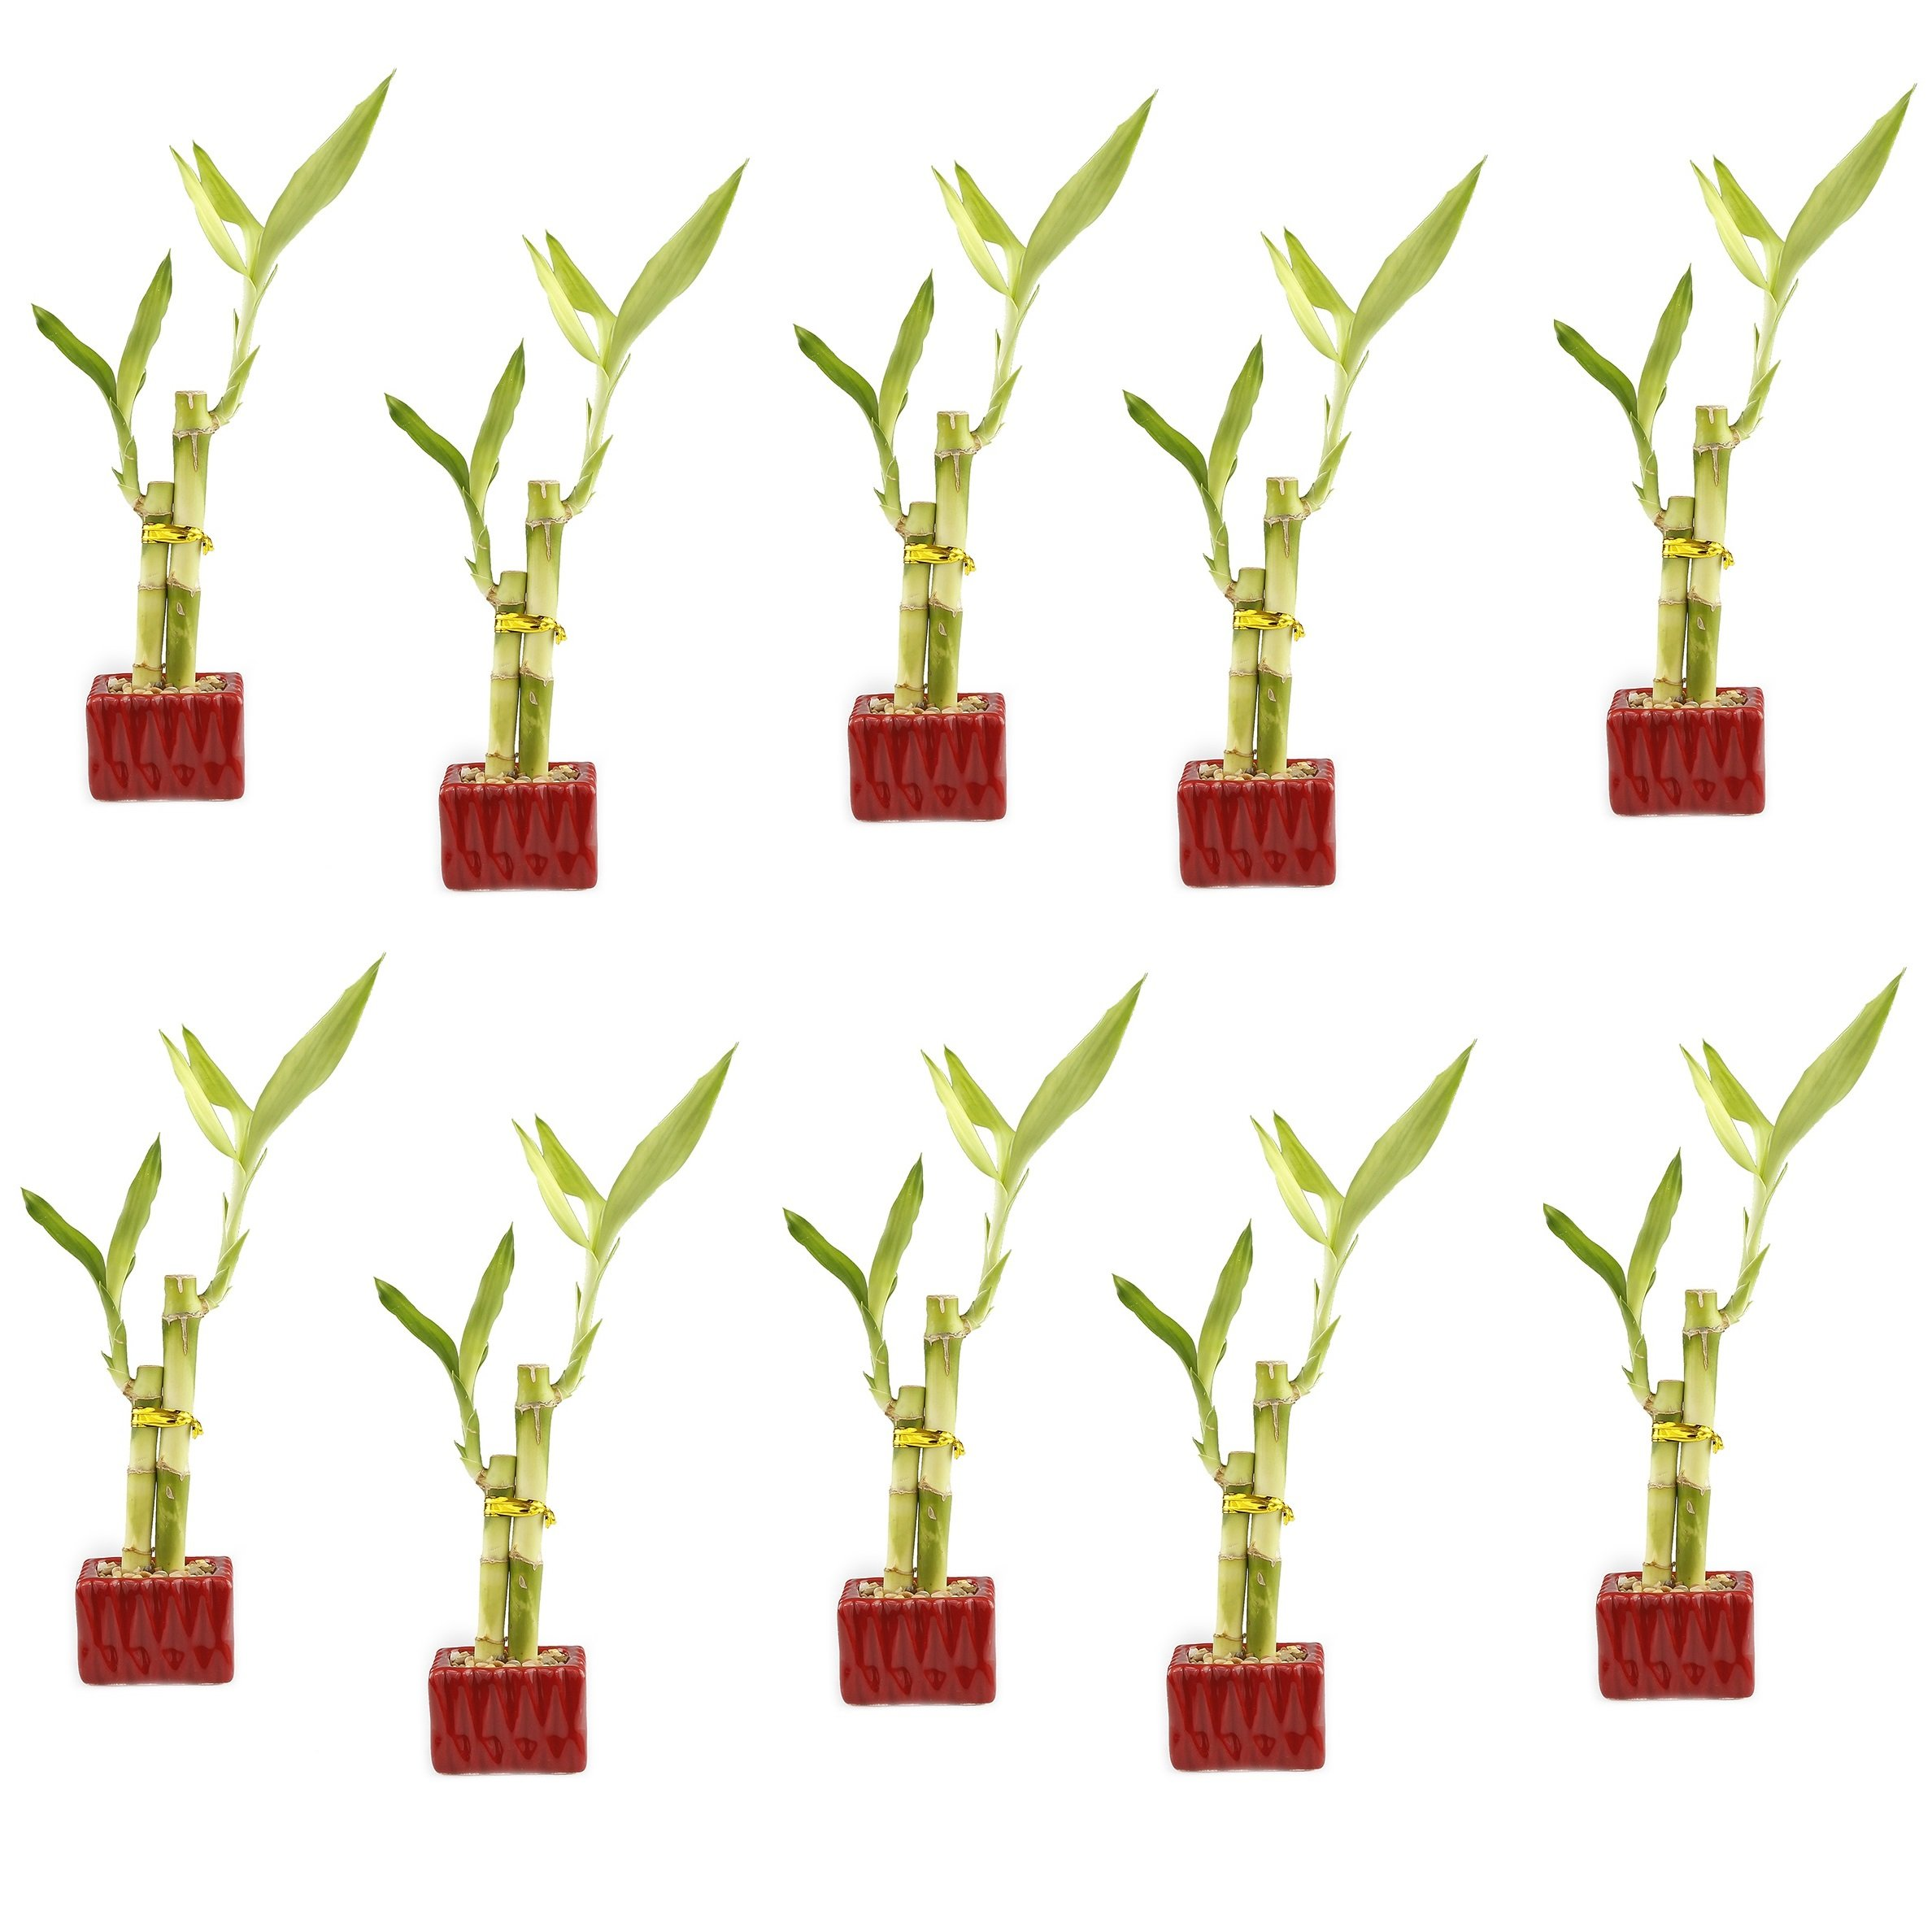 NW Wholesaler - Lucky Bamboo''Love'' Two Stalk Arrangement with Square Accented Pot (Set of 10, Red) by NW Wholesaler